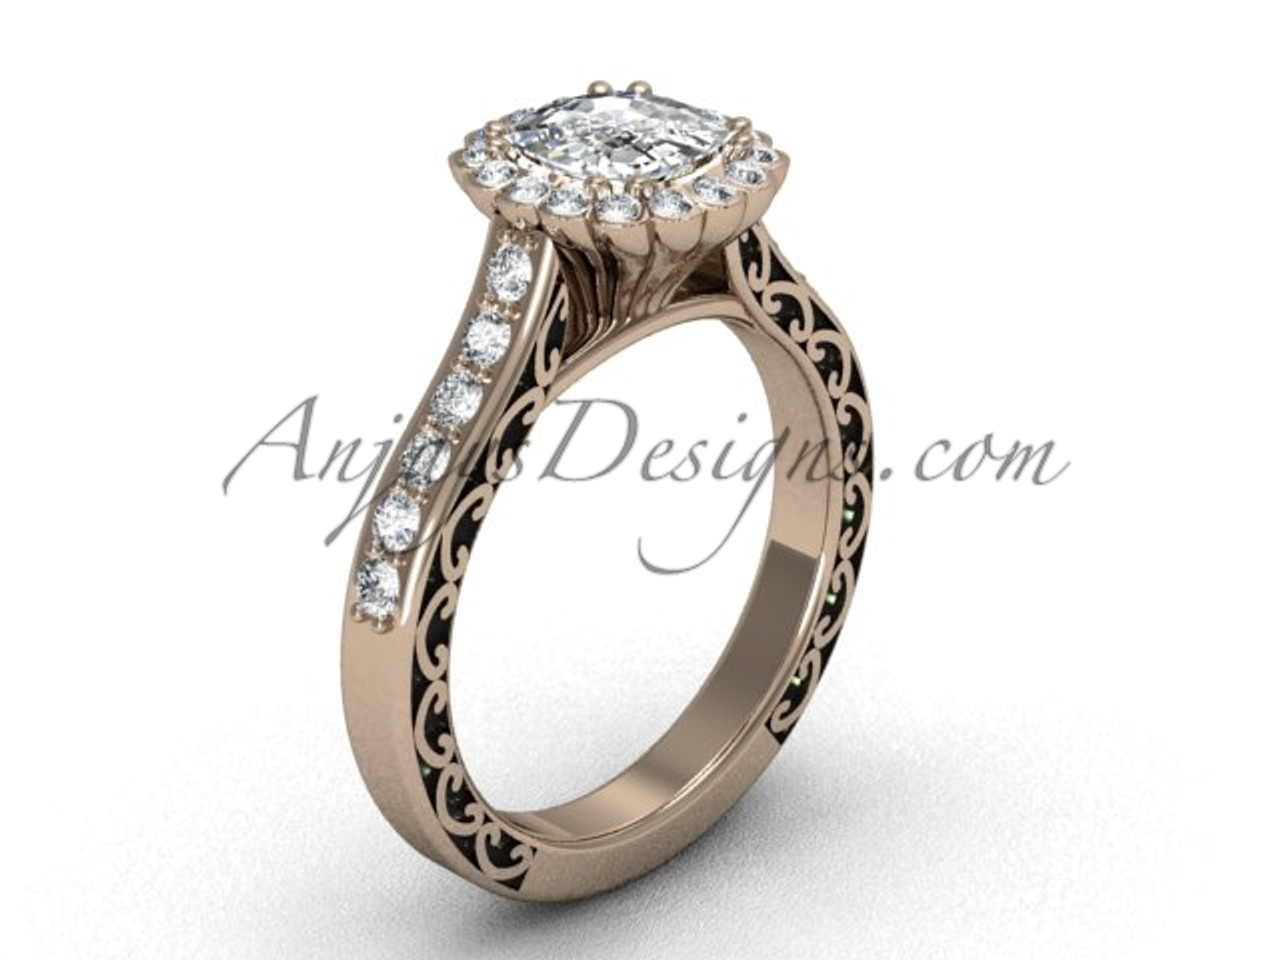 Cushion Cut Halo Engagement Rings 14k Rose Gold Antique Moissanite Ring Sgt630